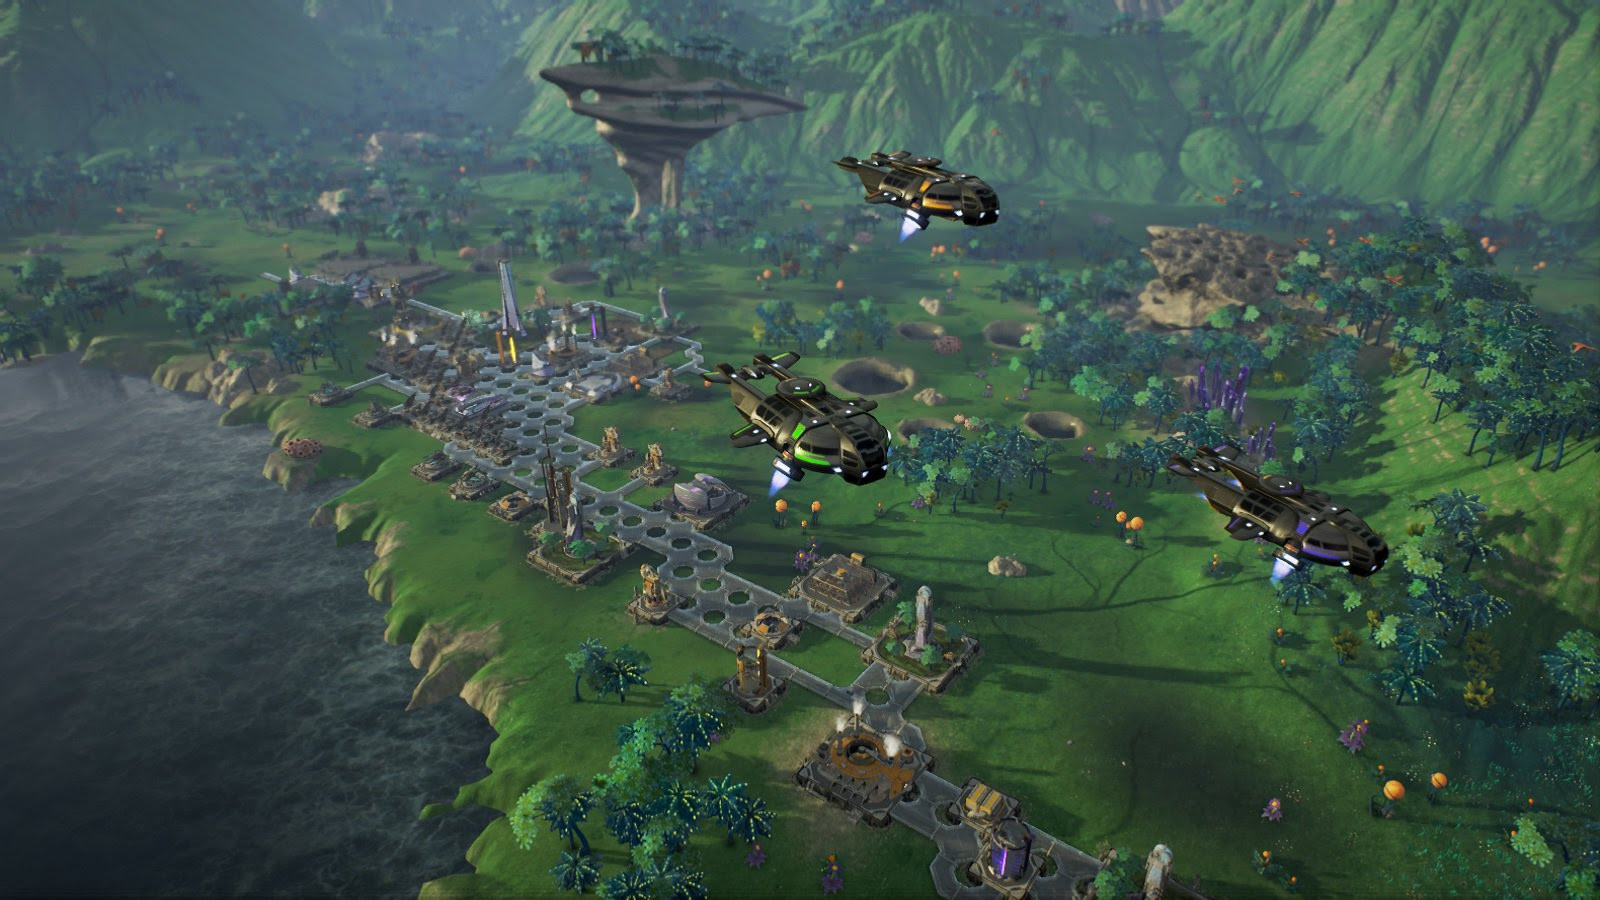 In-game screenshot from Aven Colony of some expedition ships.